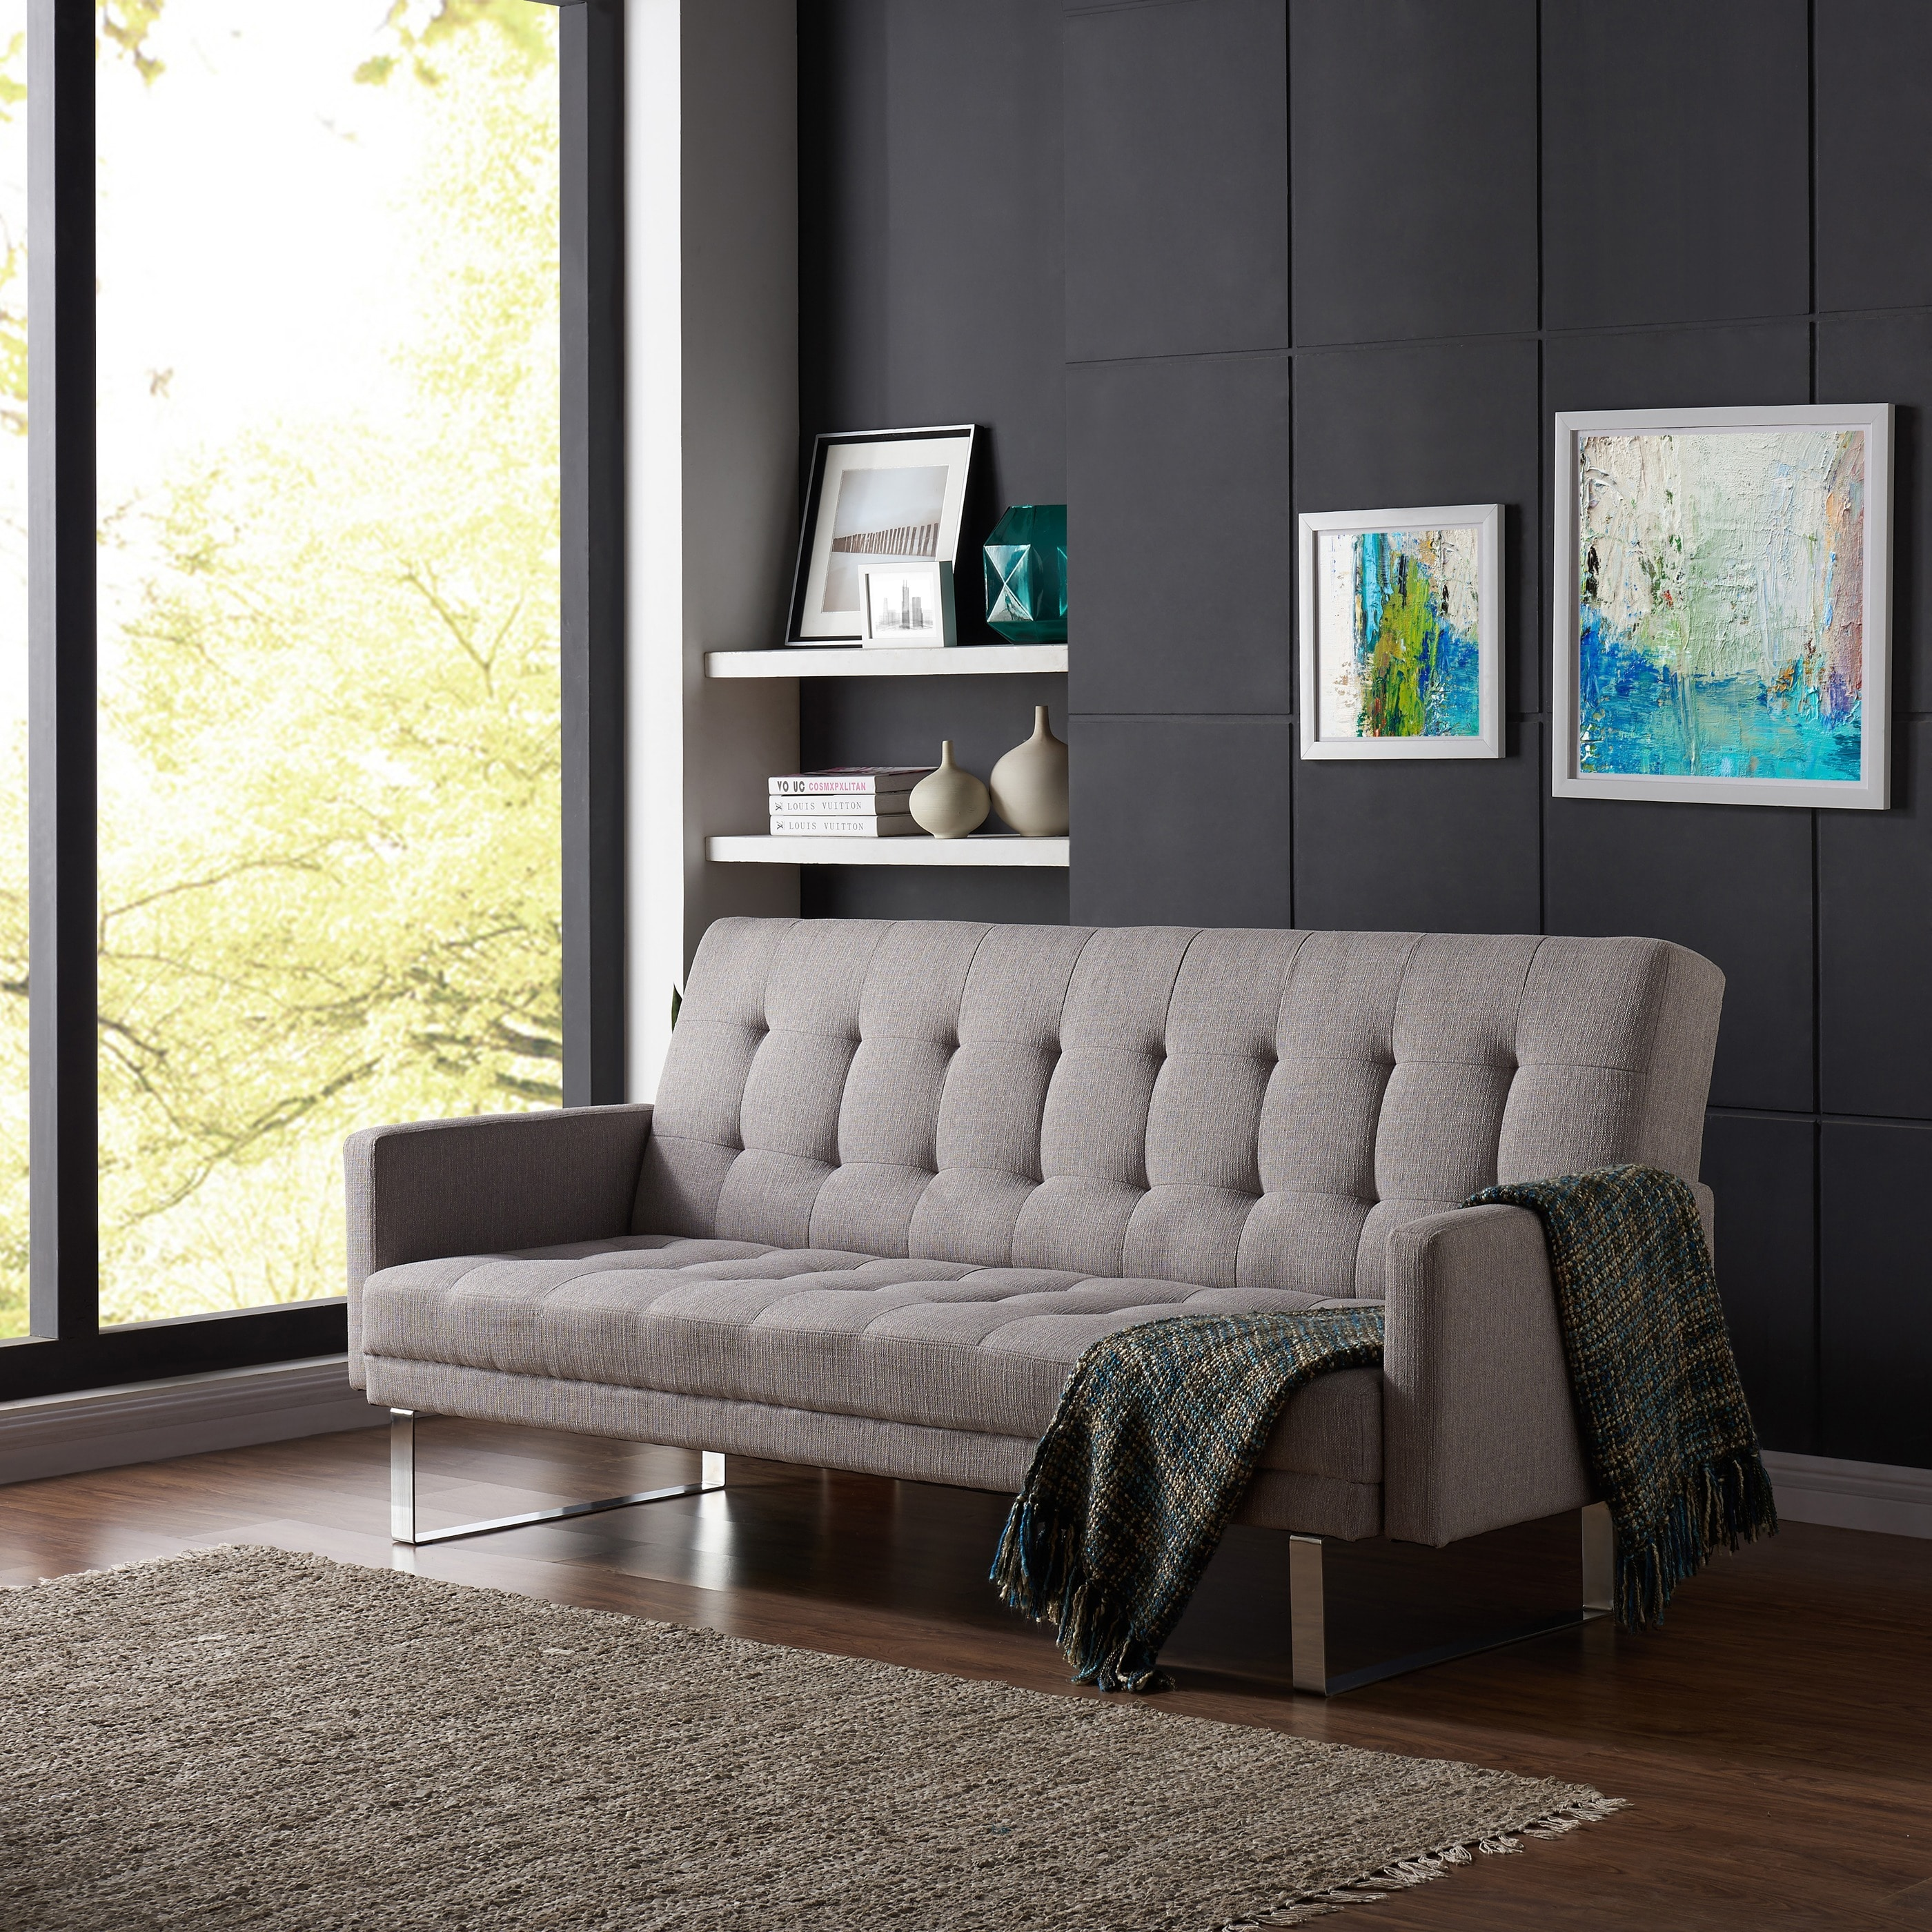 Ebay Sofa Grey Details About Handy Living Springfield Dove Grey Linen Click Clack Futon Sofa Bed